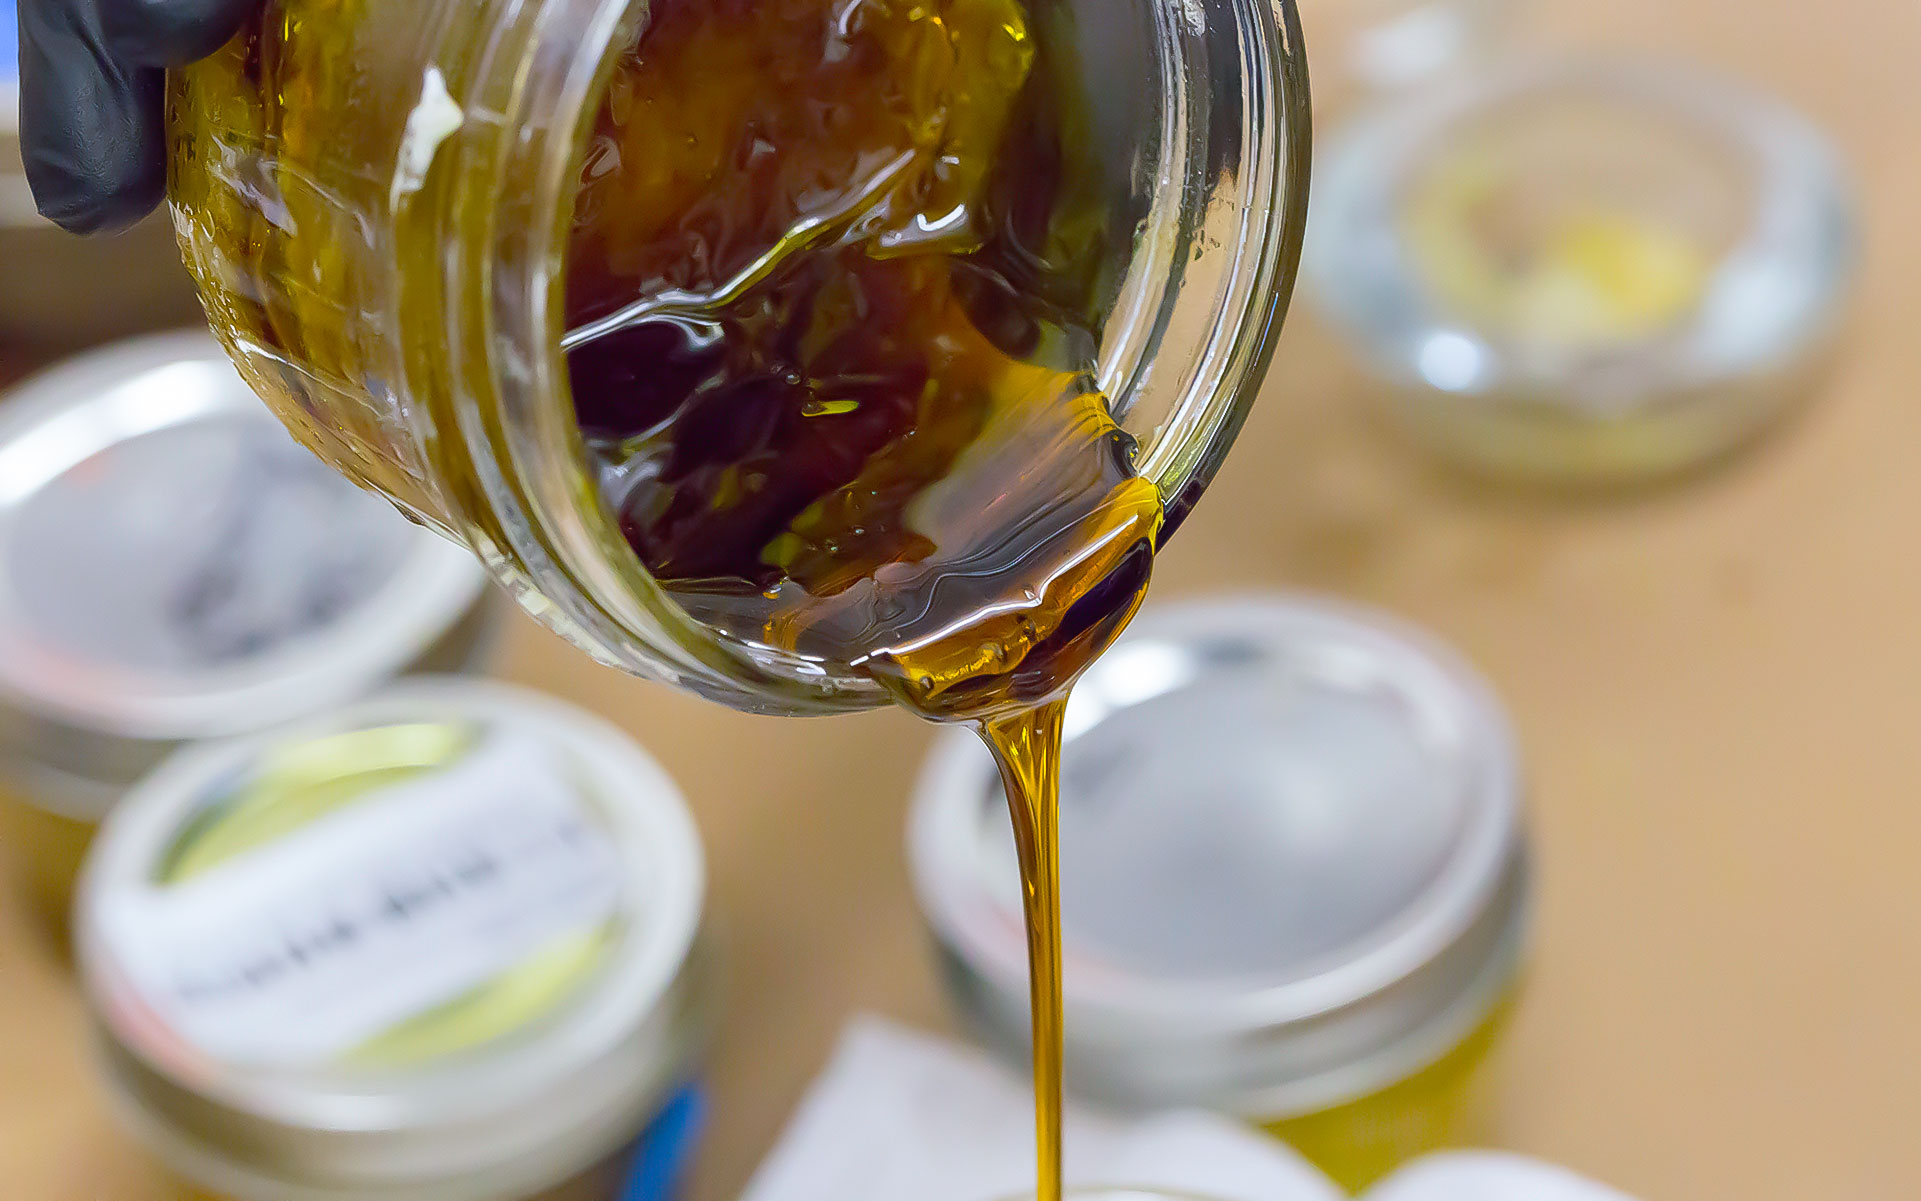 sauce, extraction, cannabis concentrate, marijuana concentrate